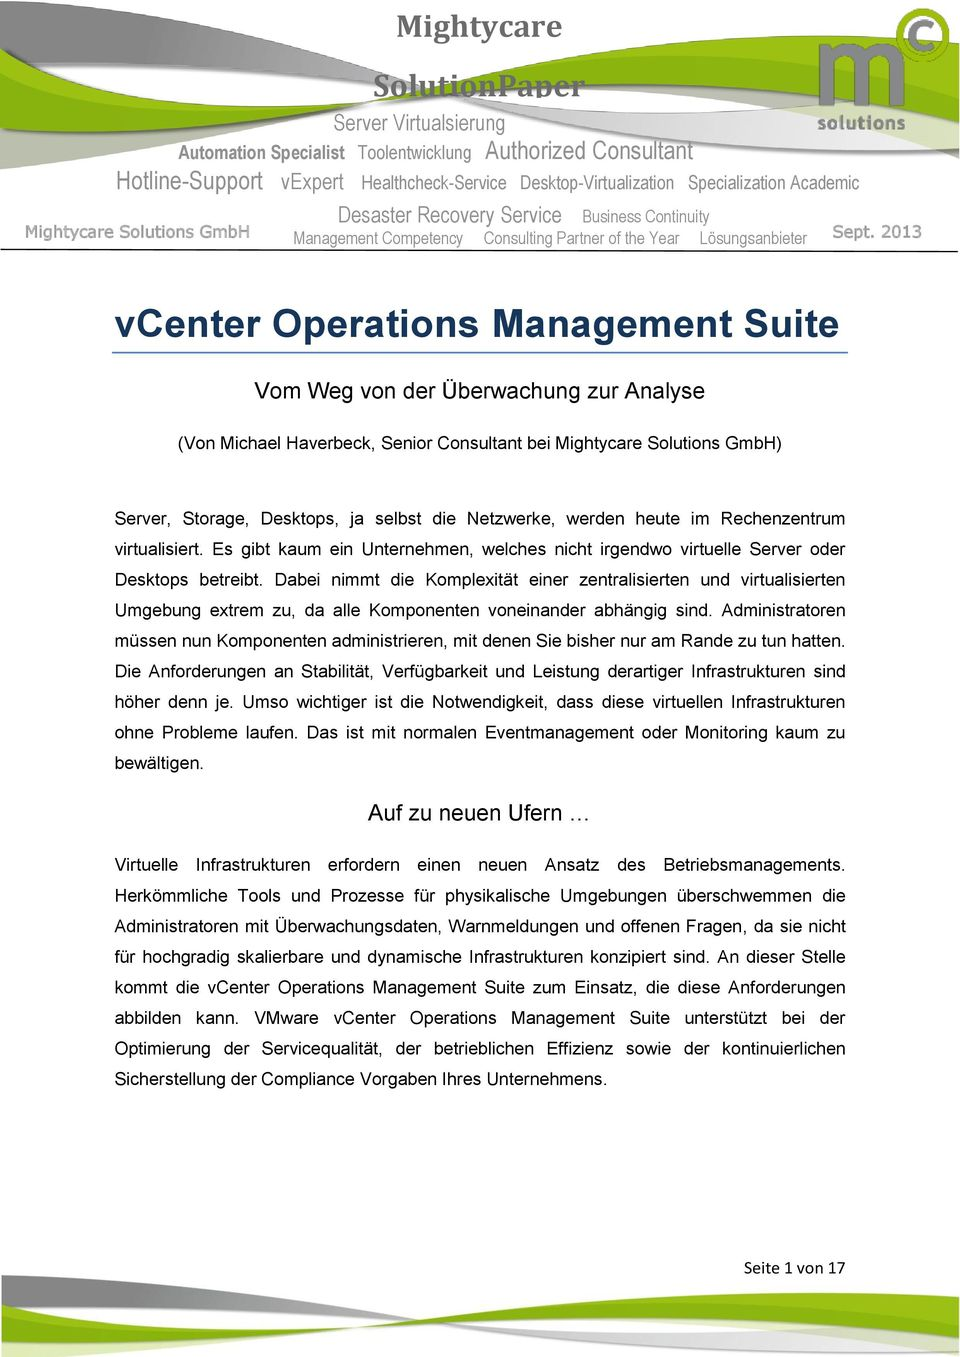 2013 vcenter Operations Management Suite Vom Weg von der Überwachung zur Analyse (Von Michael Haverbeck, Senior Consultant bei Mightycare Solutions GmbH) Server, Storage, Desktops, ja selbst die